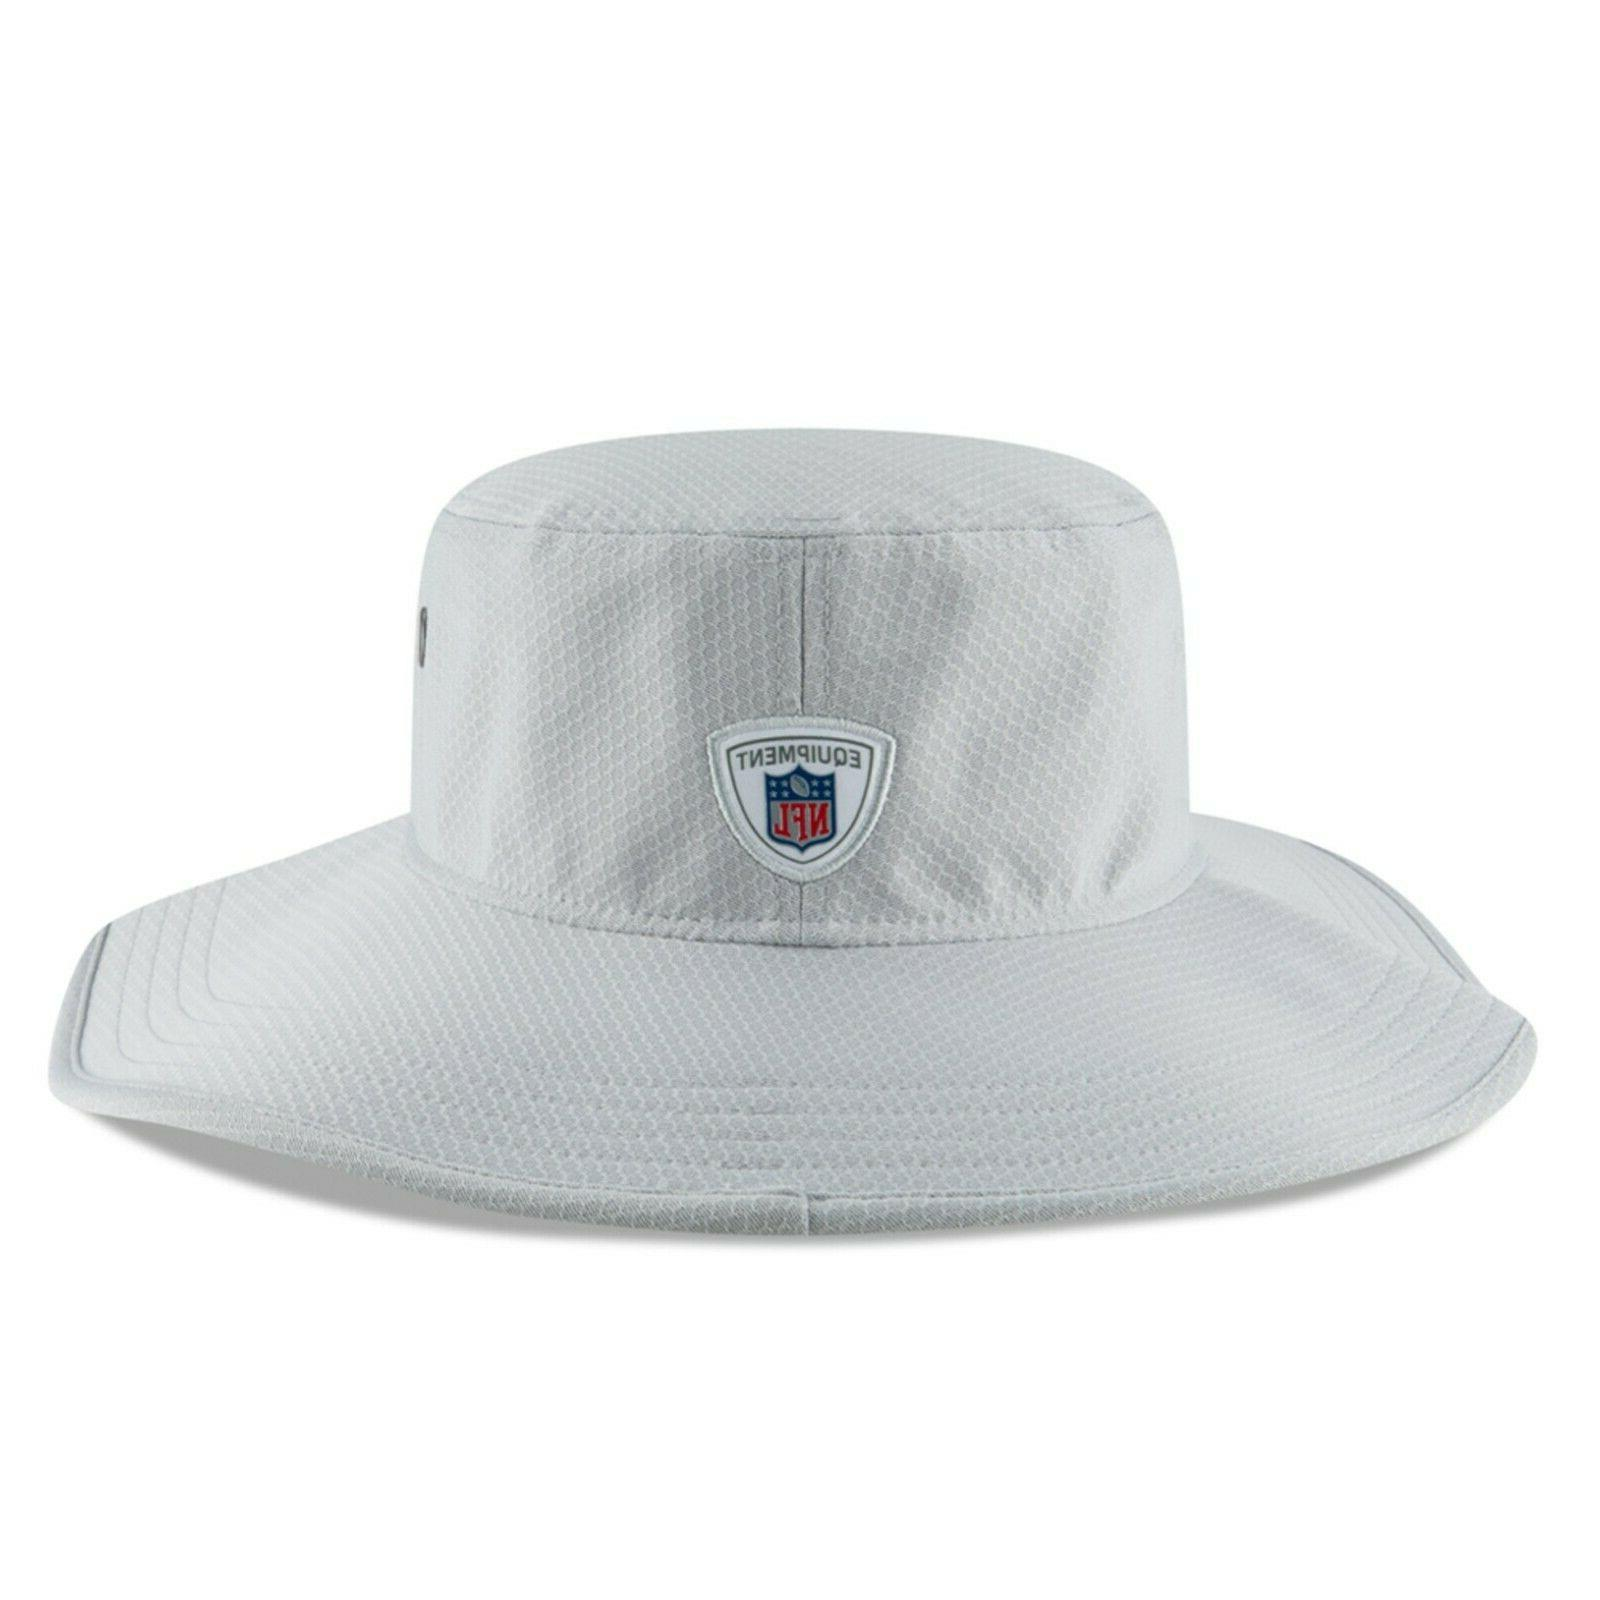 Dallas Cowboys New Era Panama Gray Training Bucket Hat Size